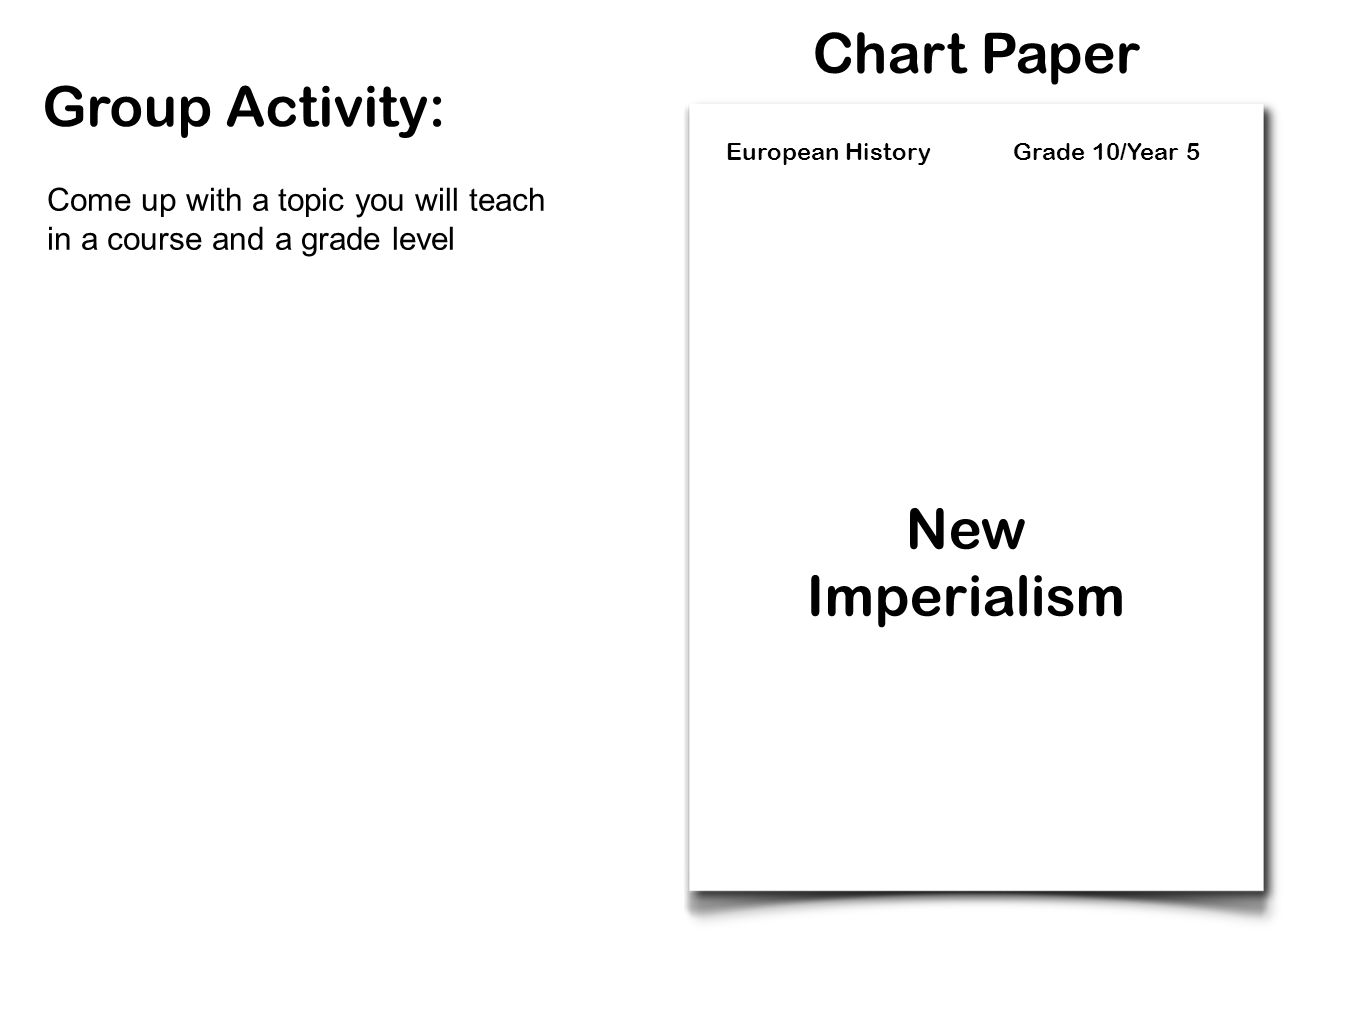 Chart Paper Group Activity: New Imperialism